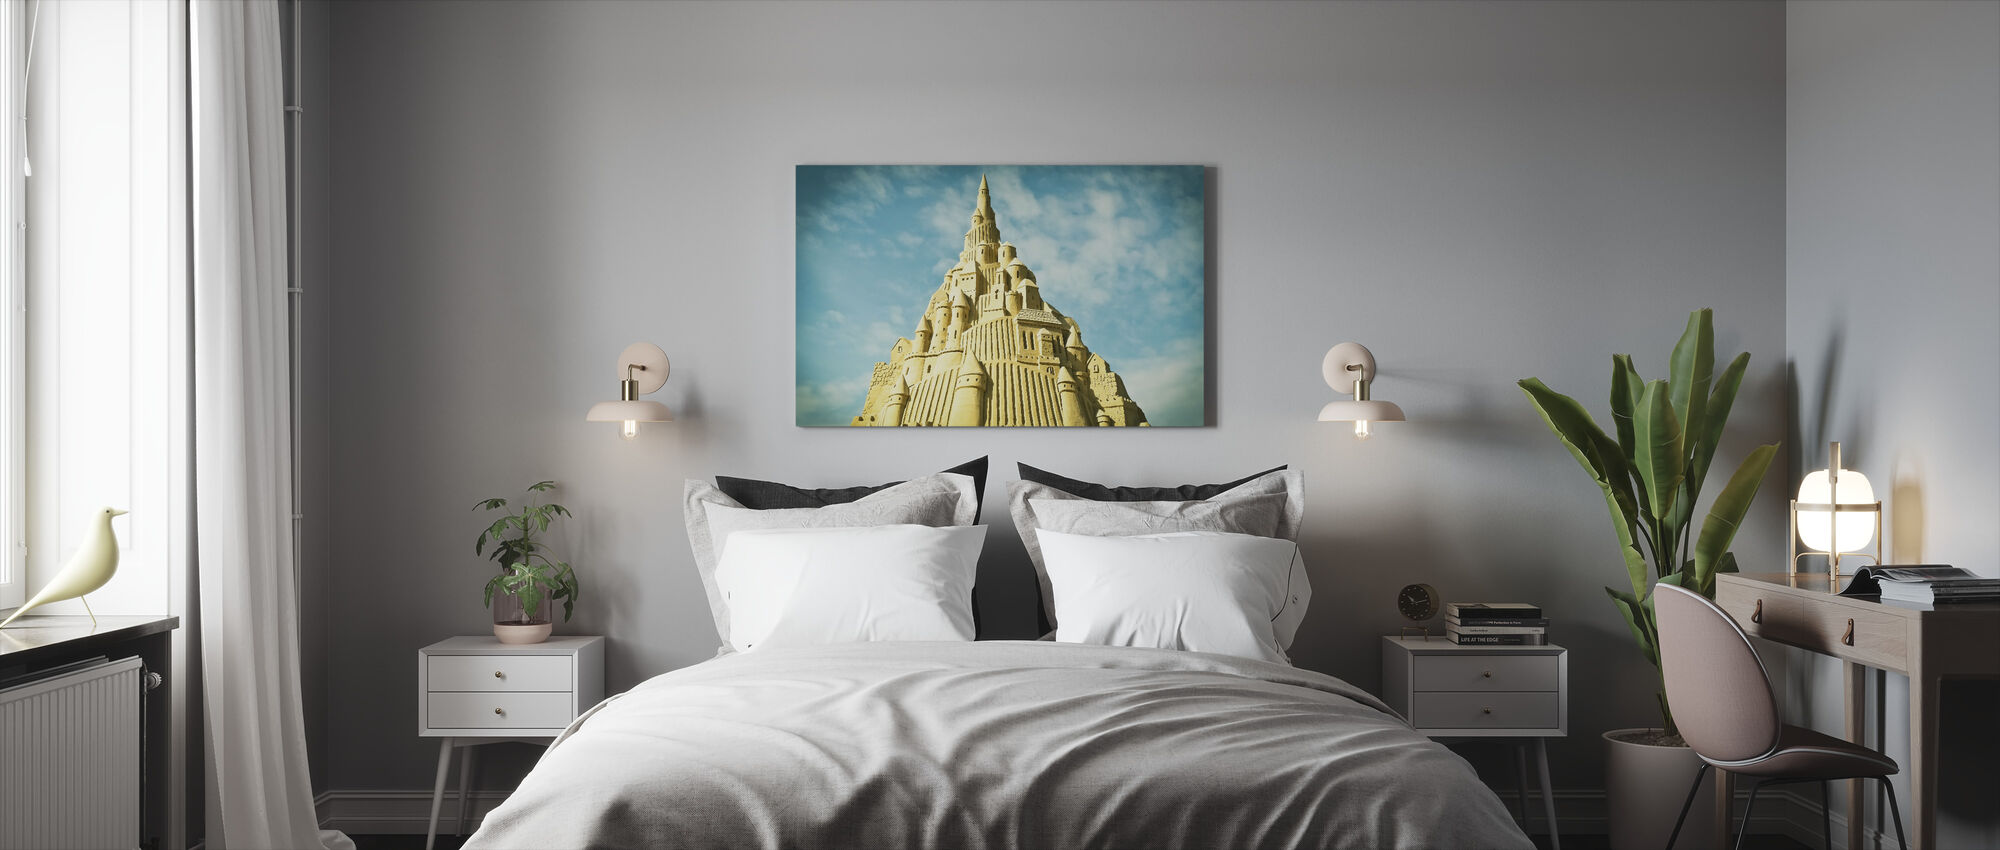 Sand Sculpture - Canvas print - Bedroom